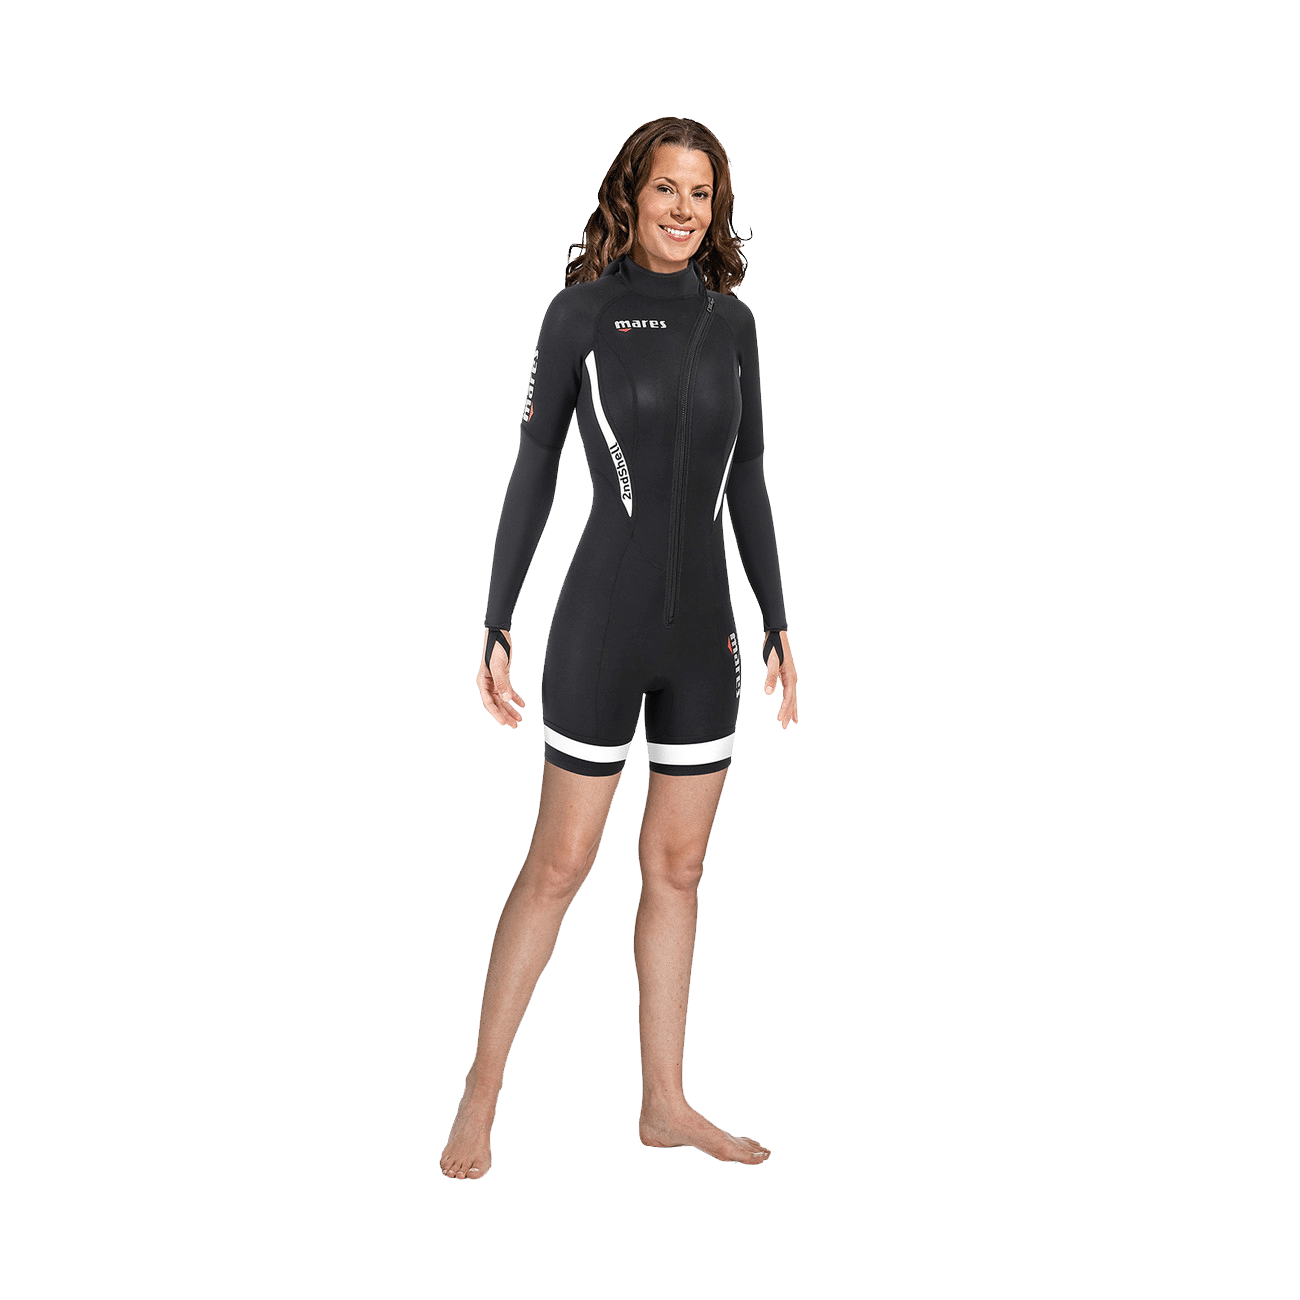 Mares 2nd Shell Shorty She Dives Wetsuit | Mares Wetsuits | Mares Singapore